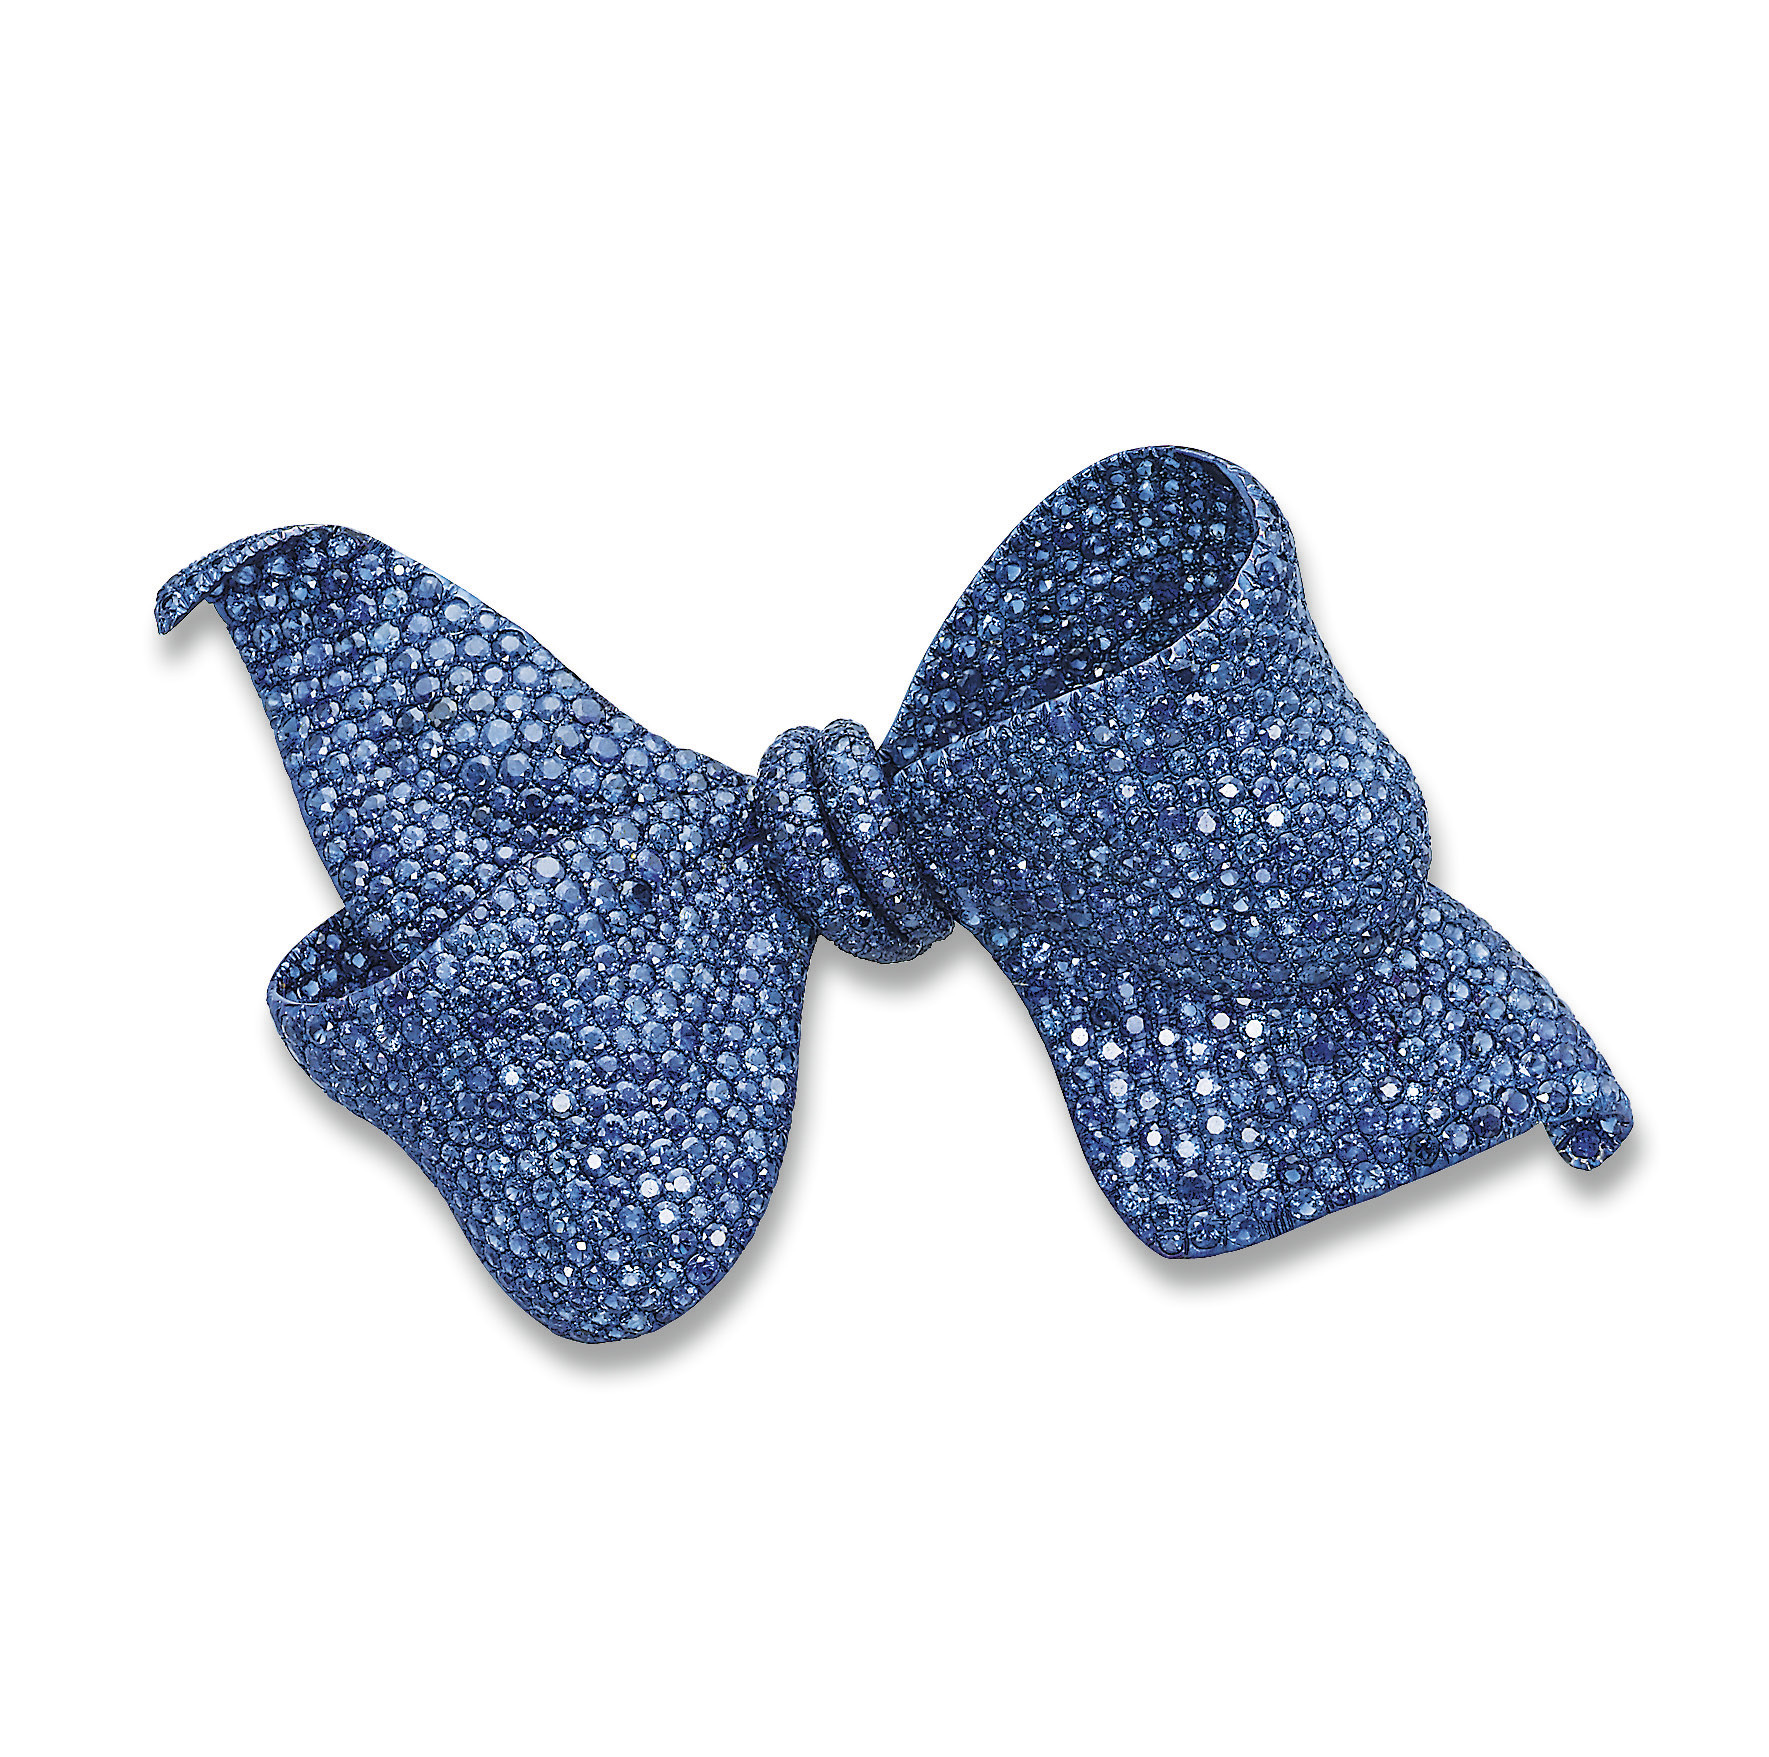 AN IMPRESSIVE TITANIUM AND SAPPHIRE BOW BROOCH, BY MICHELE DELLA VALLE